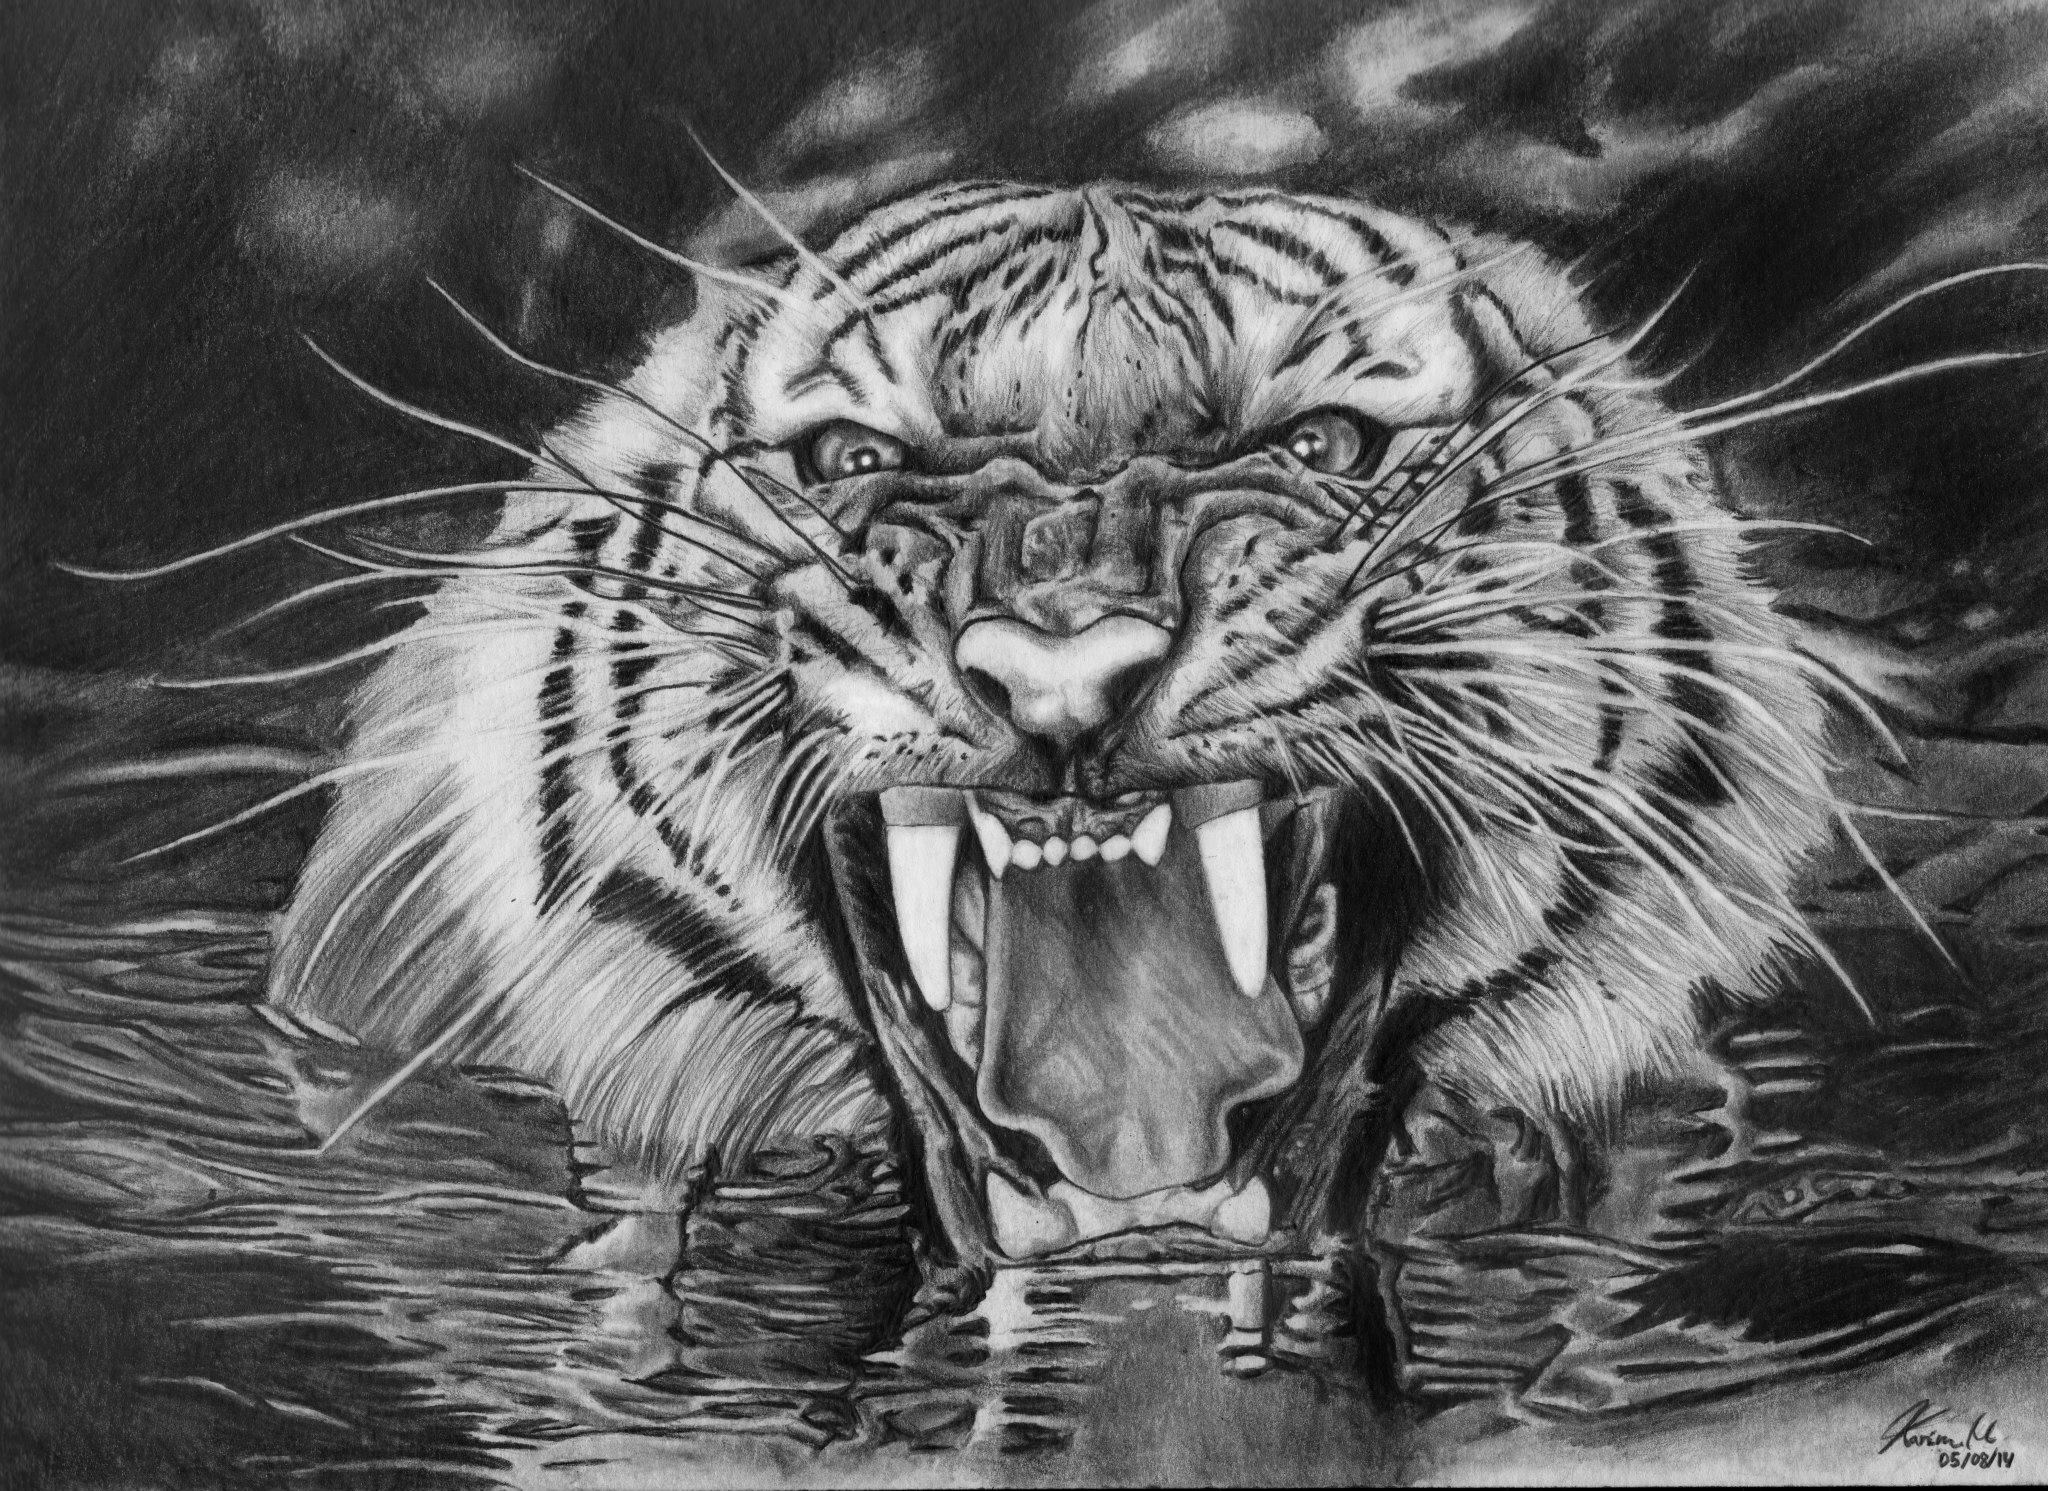 Richard parker life of pi by popokarimz on deviantart for Life of pi characters animals